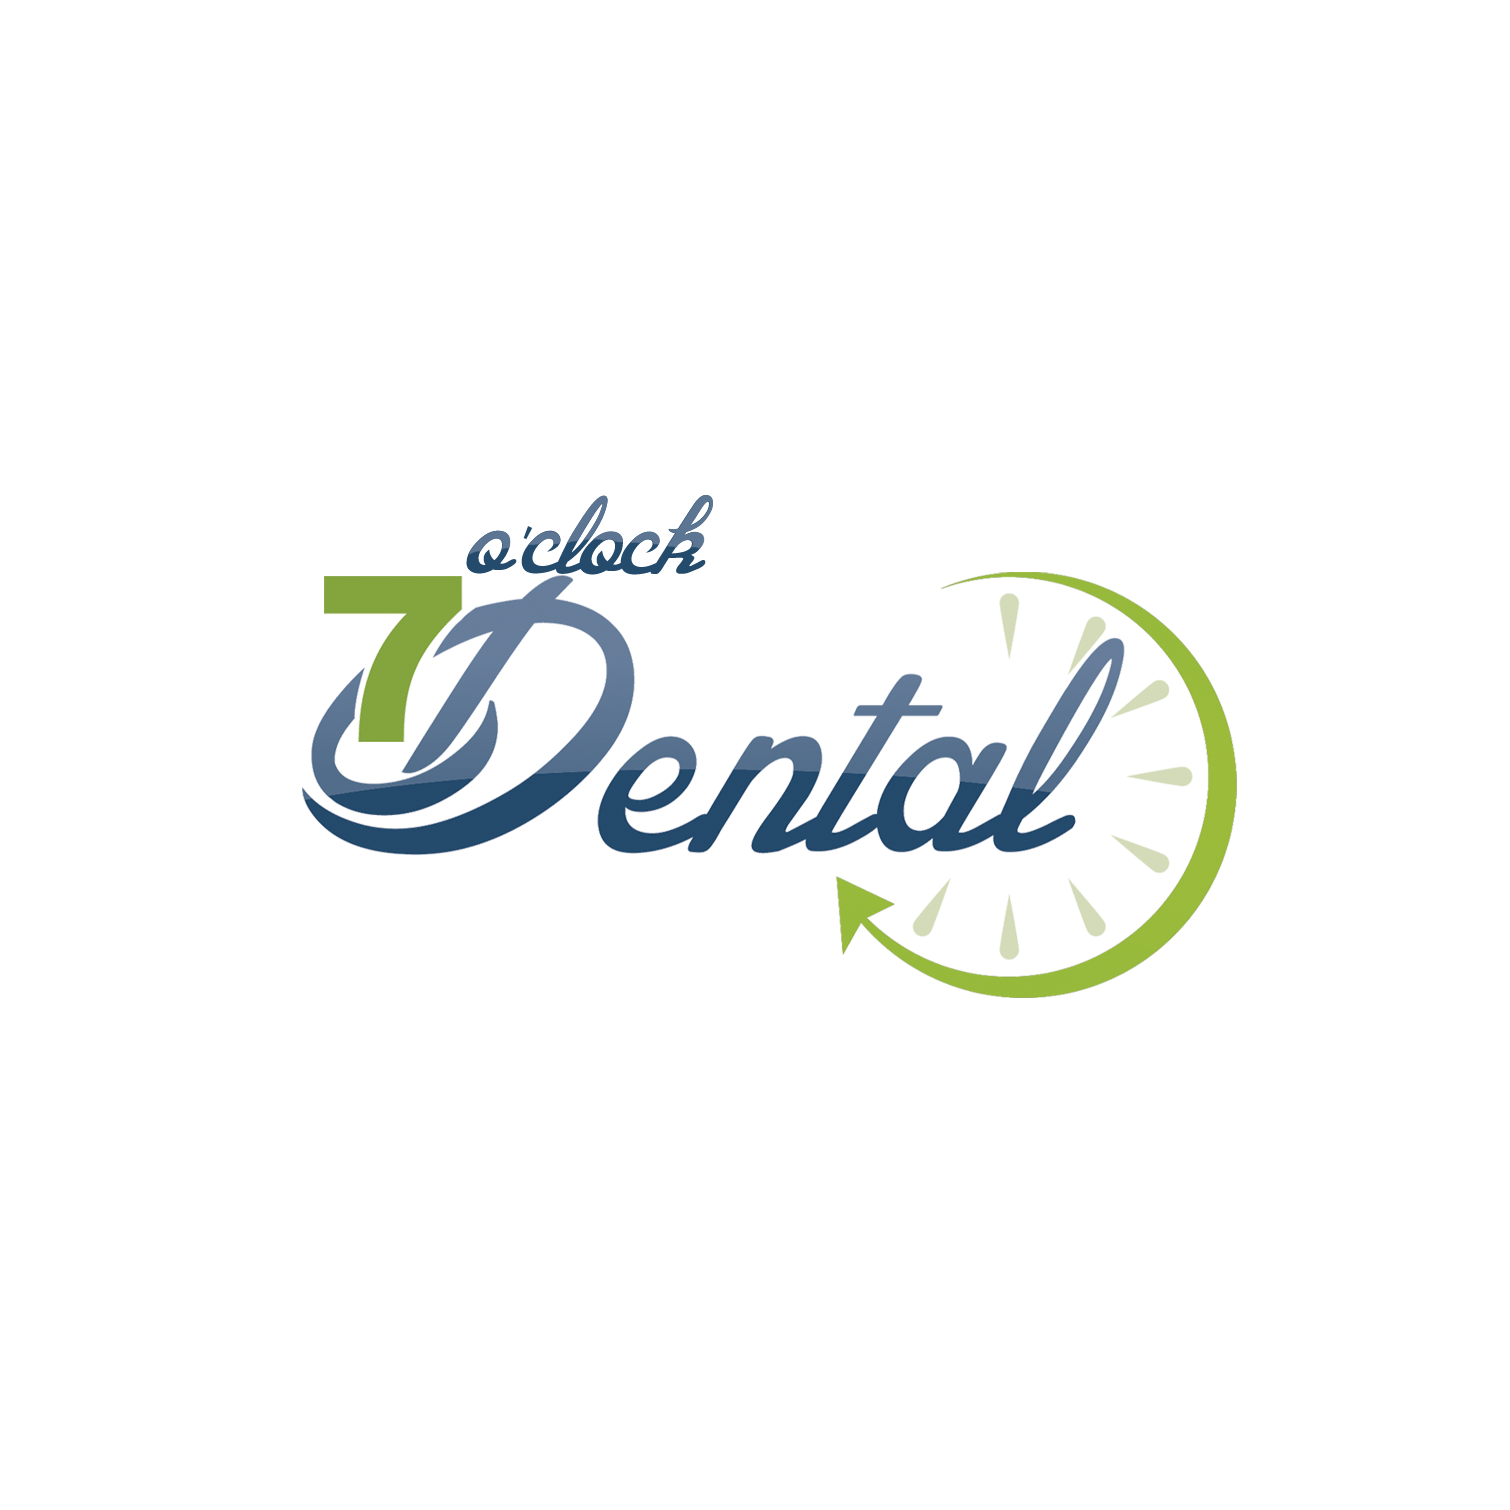 7 o'clock Dental - John C. Tripp III, DDS